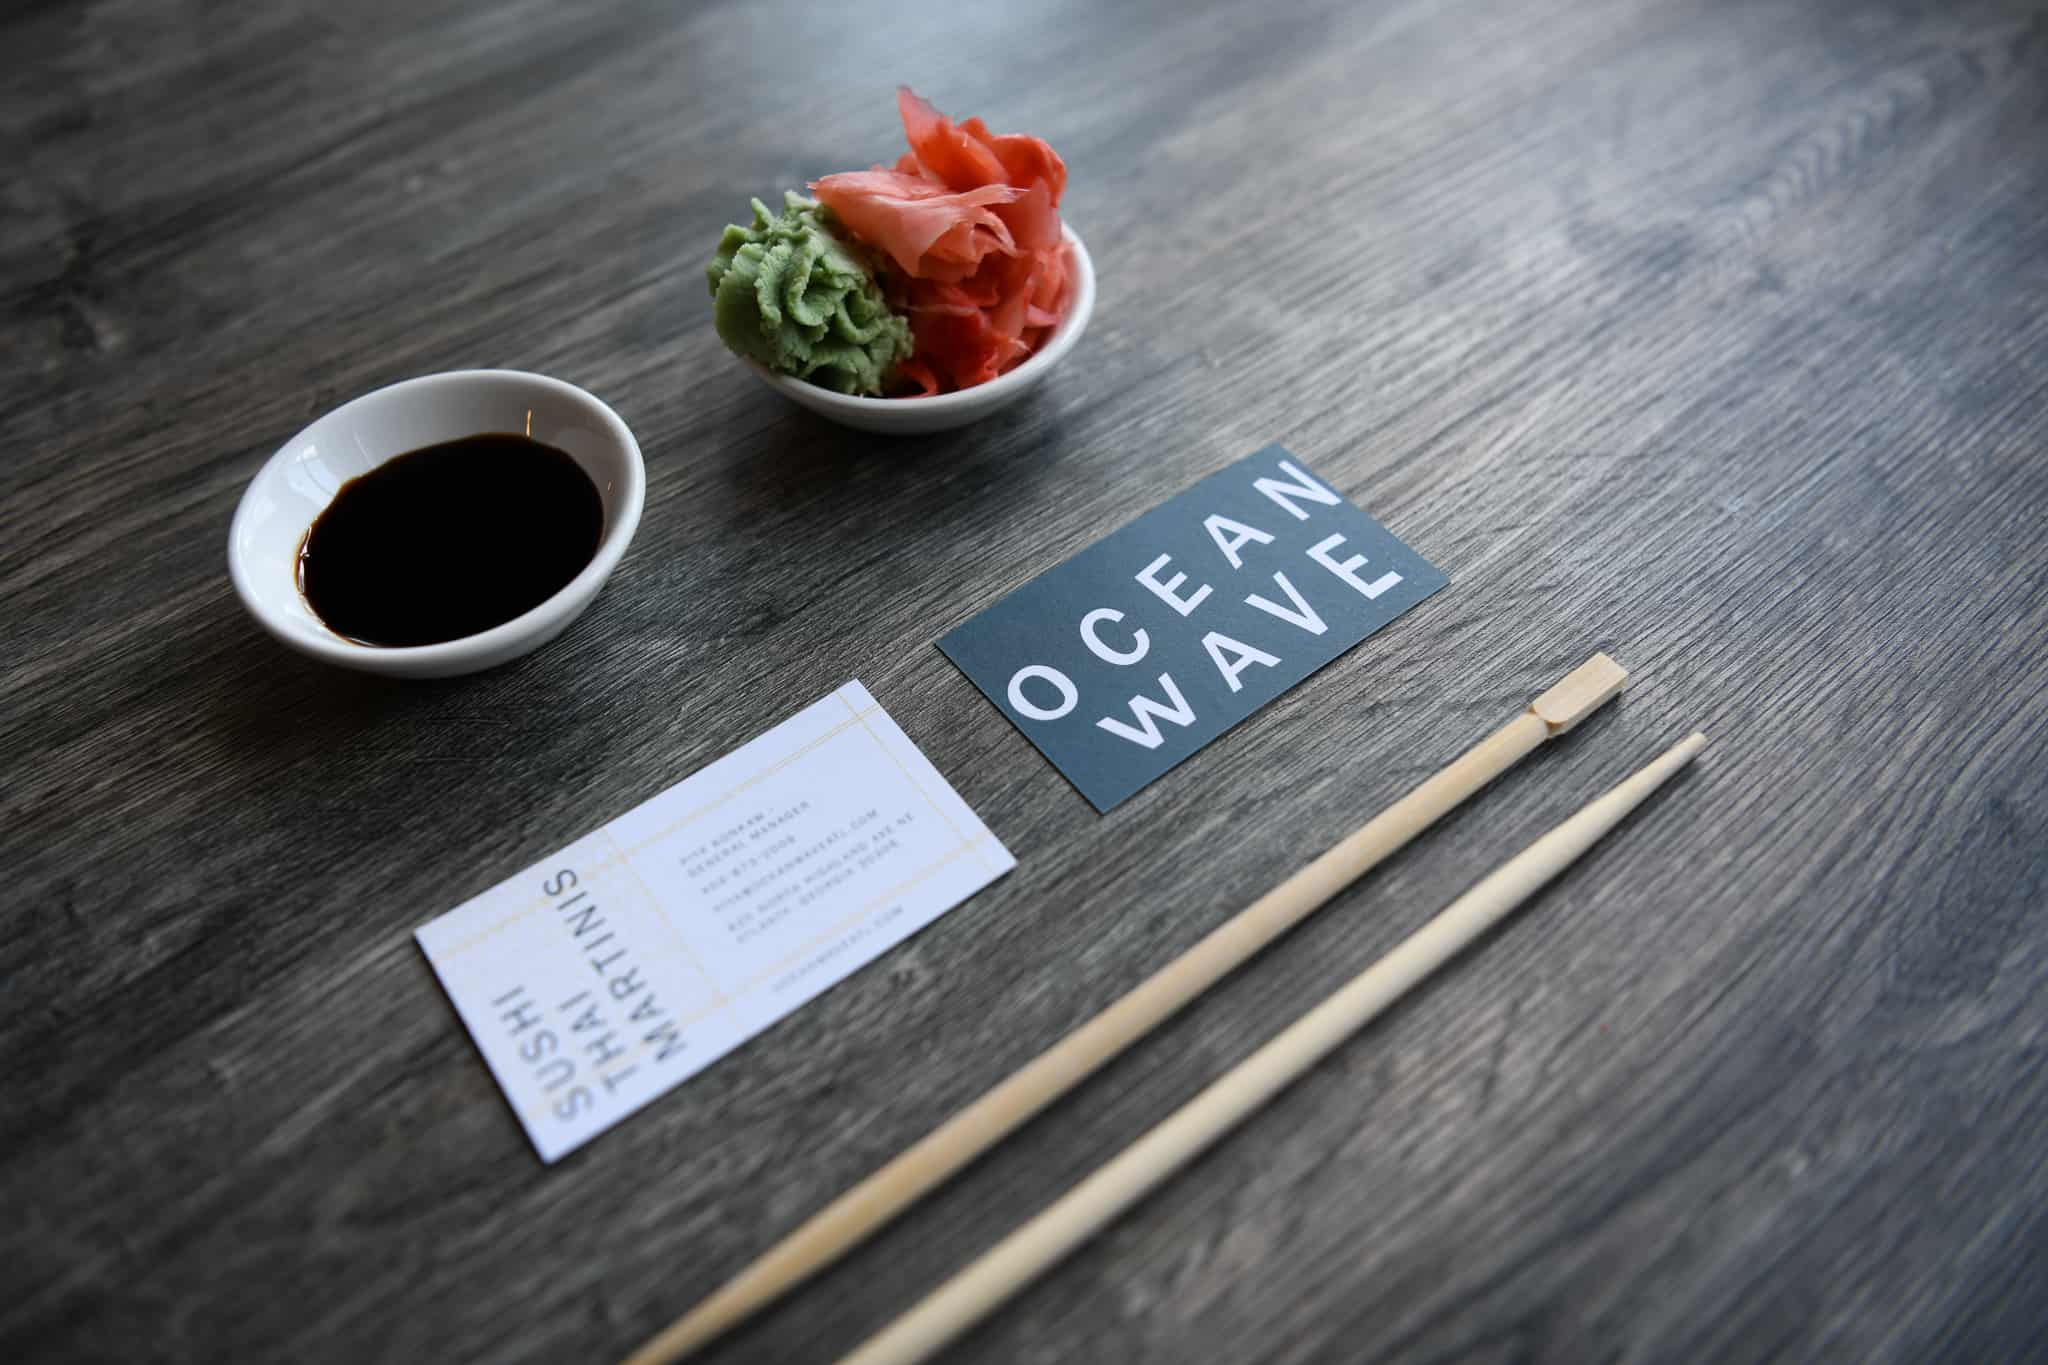 OceanWave sushi thai restaurant business card design